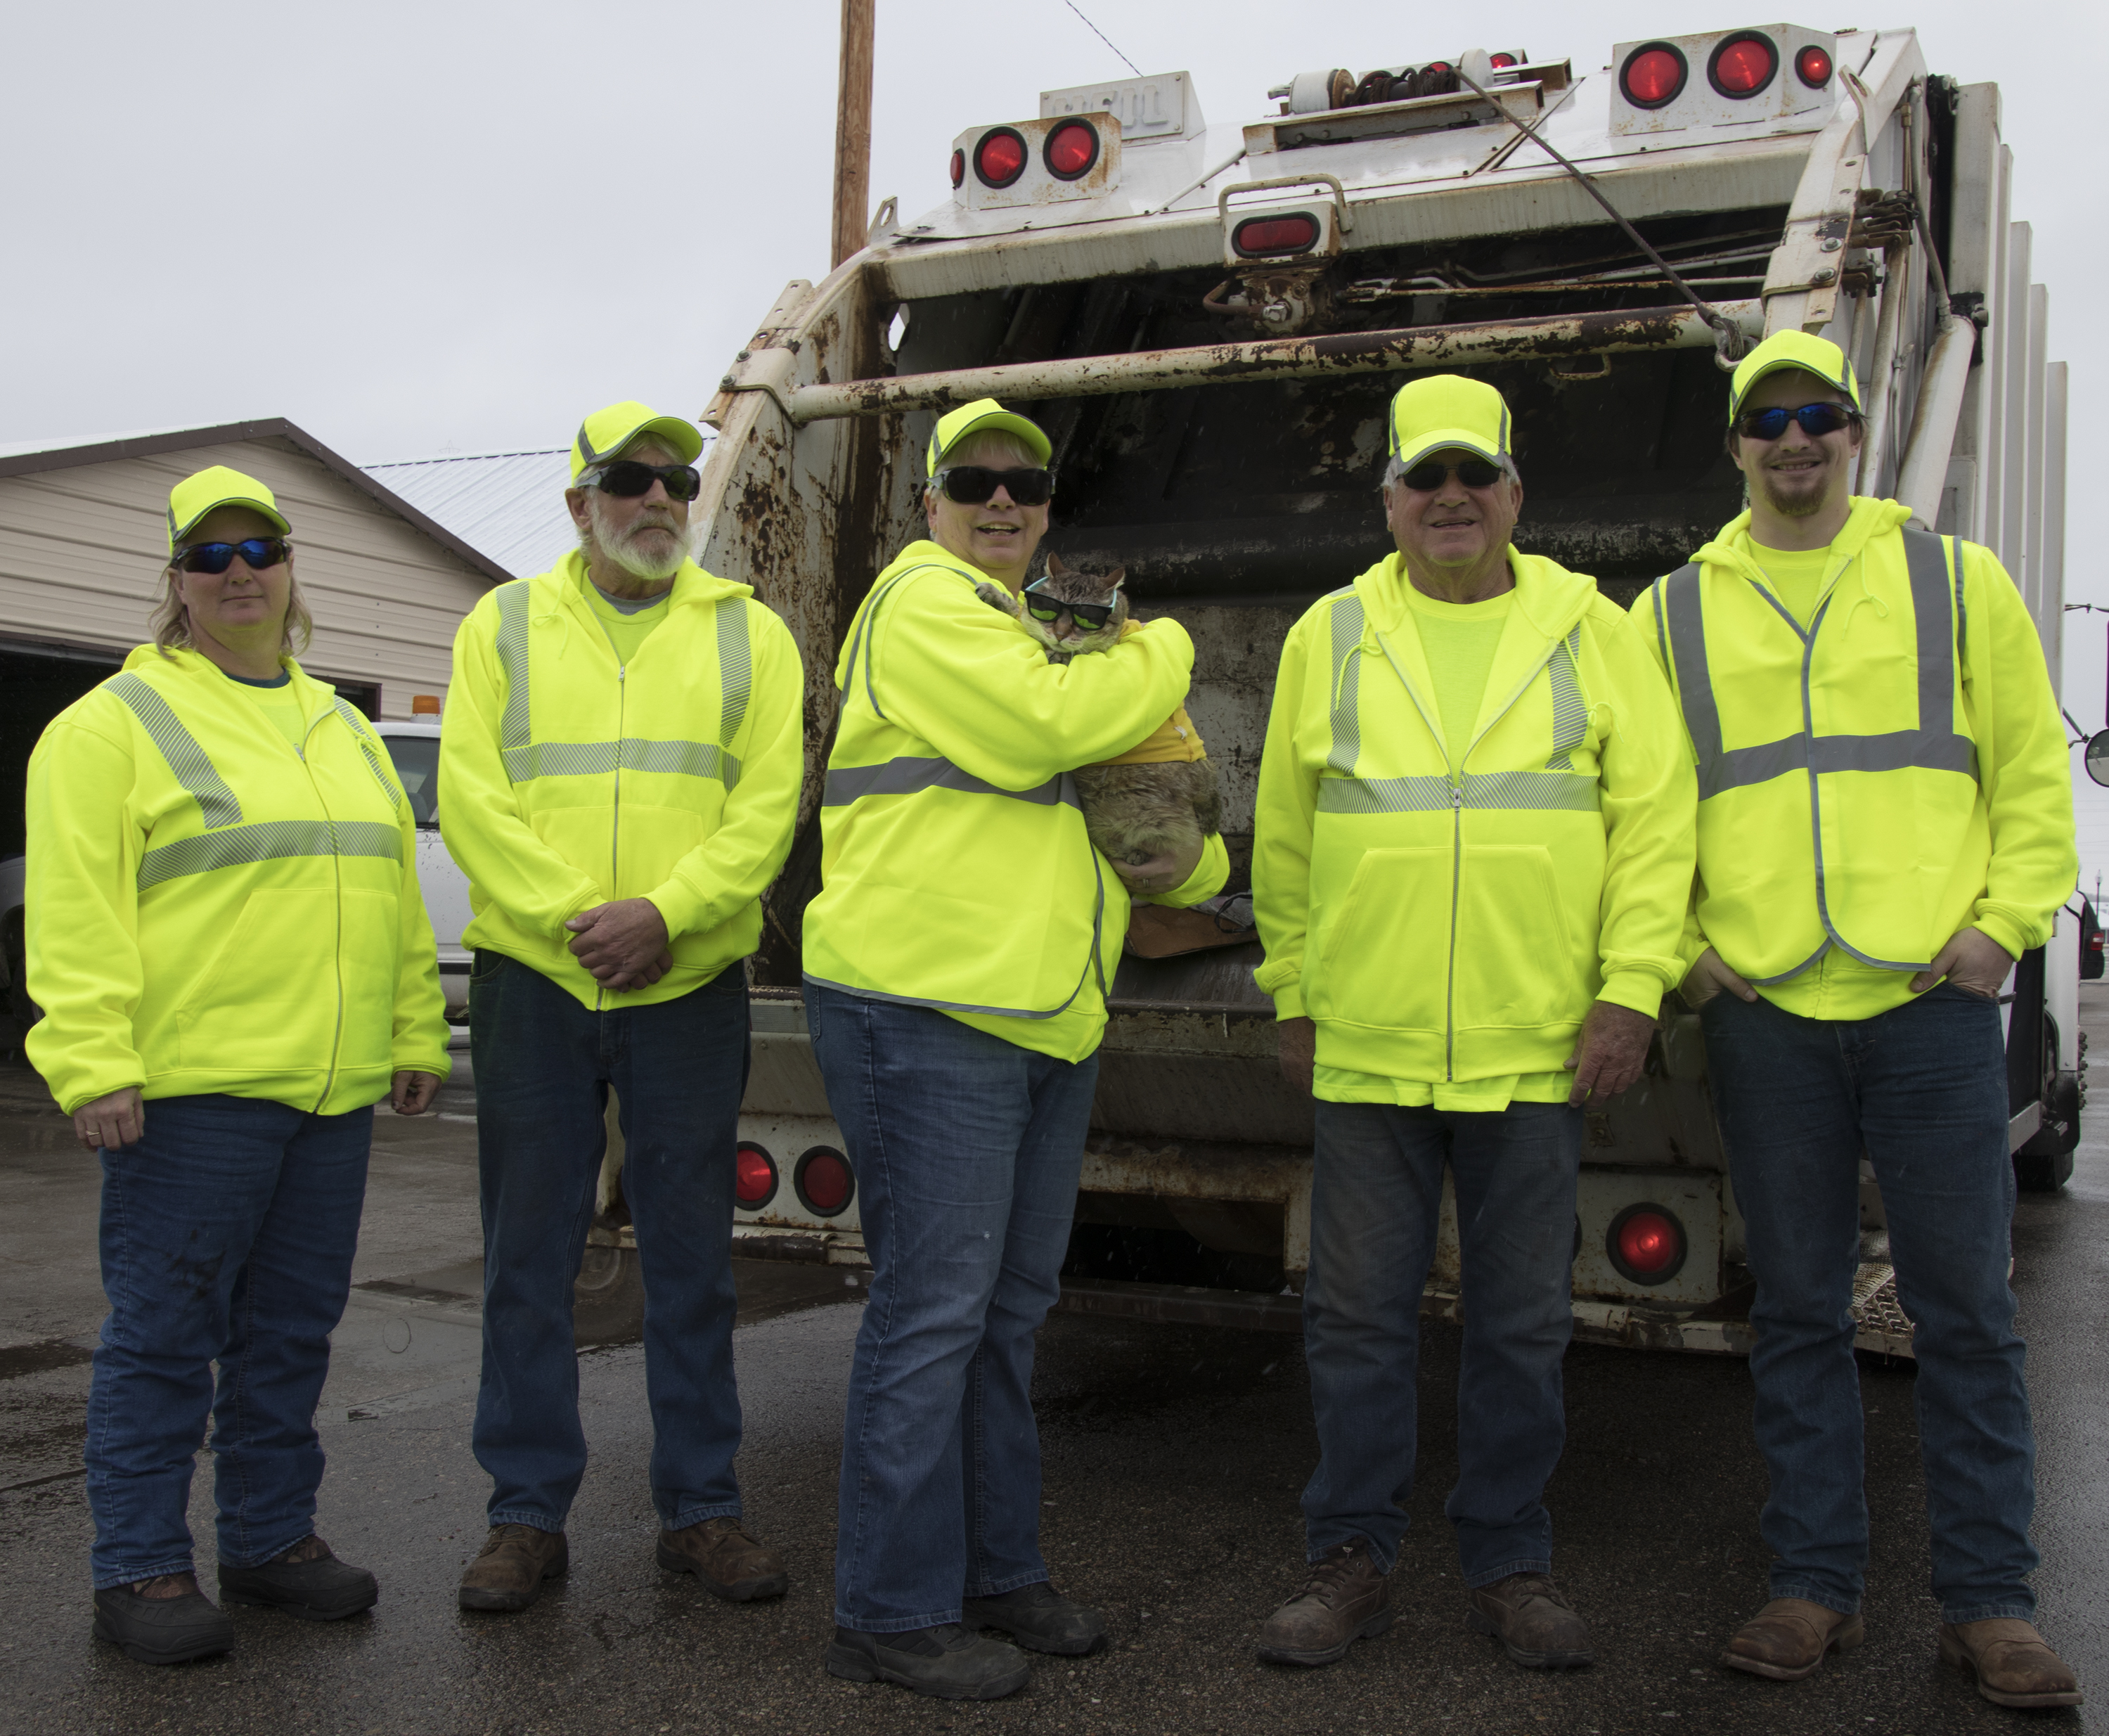 Pilger receives protective gear